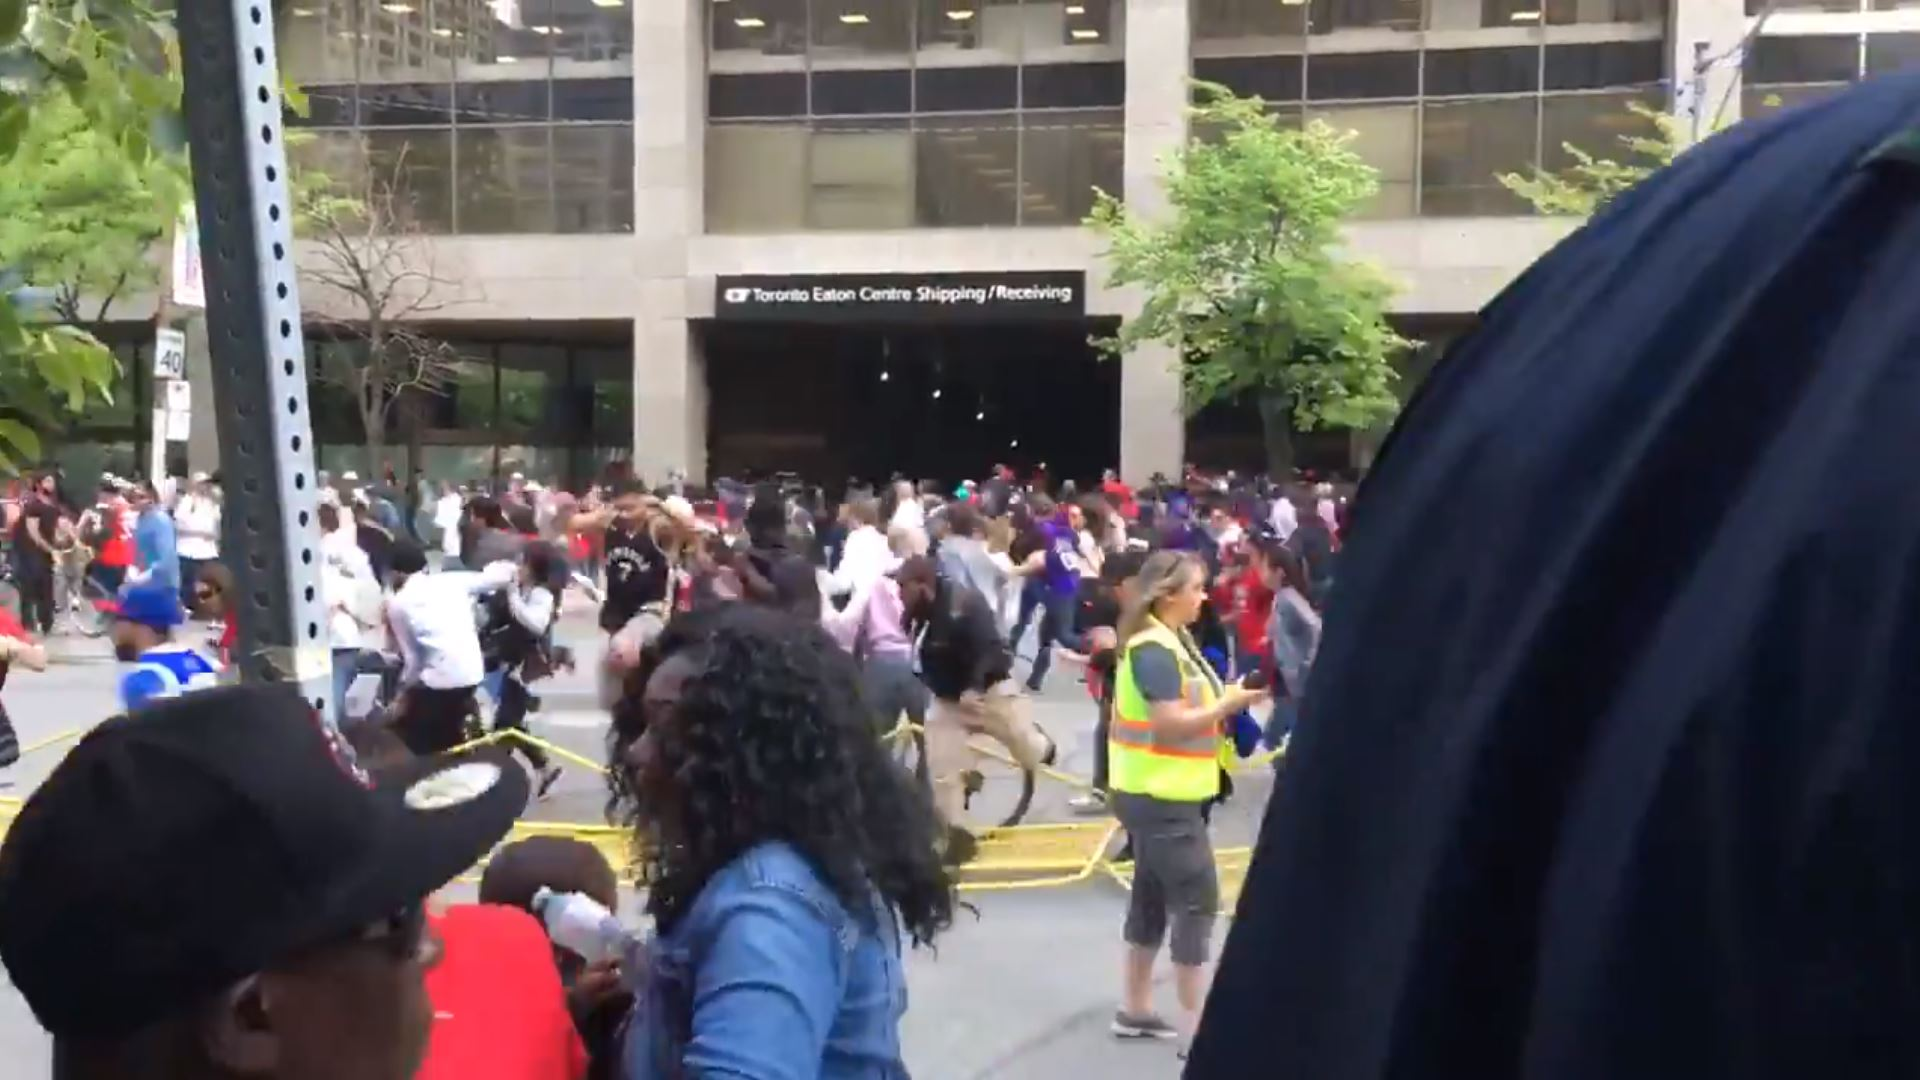 Toronto Raptors Parade Shooting